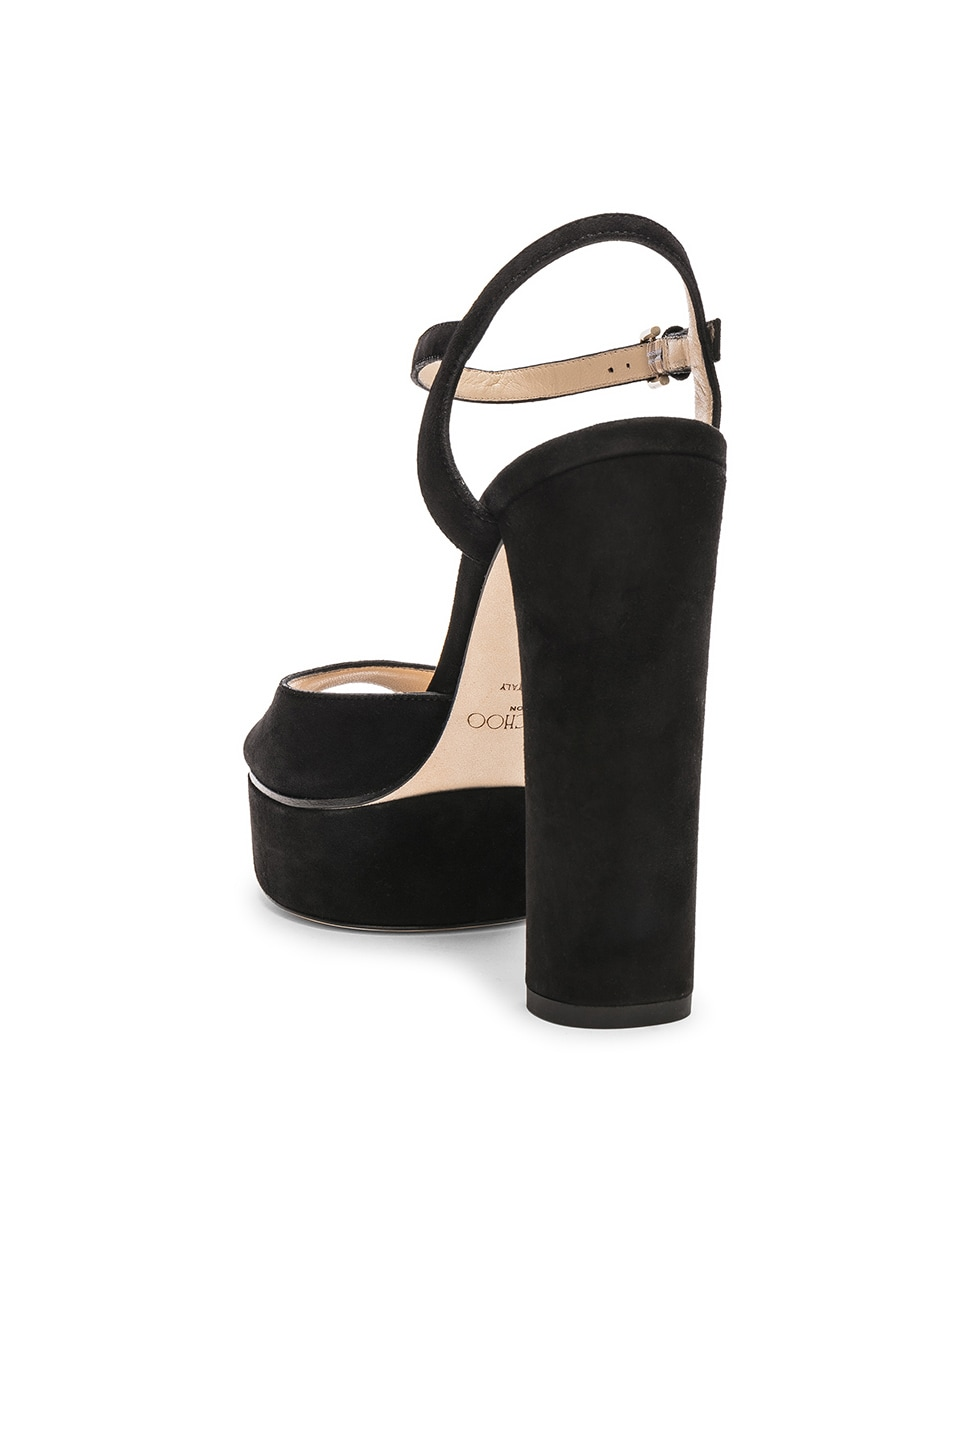 Image 3 of Jimmy Choo Peachy 125 Suede Platform in Black